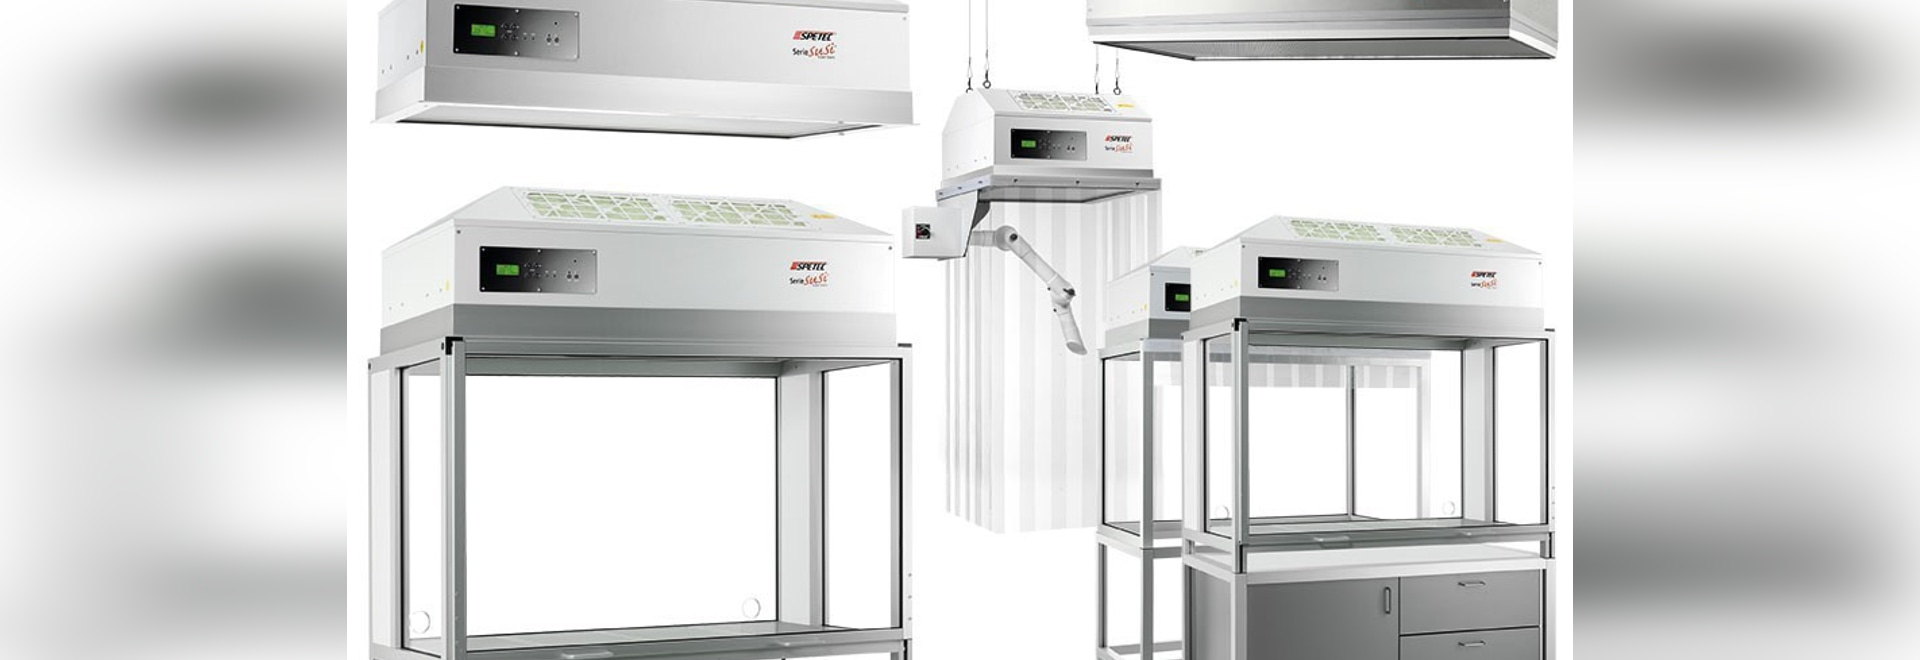 Spetec Cleanroom Technology for any workplace in industry and research